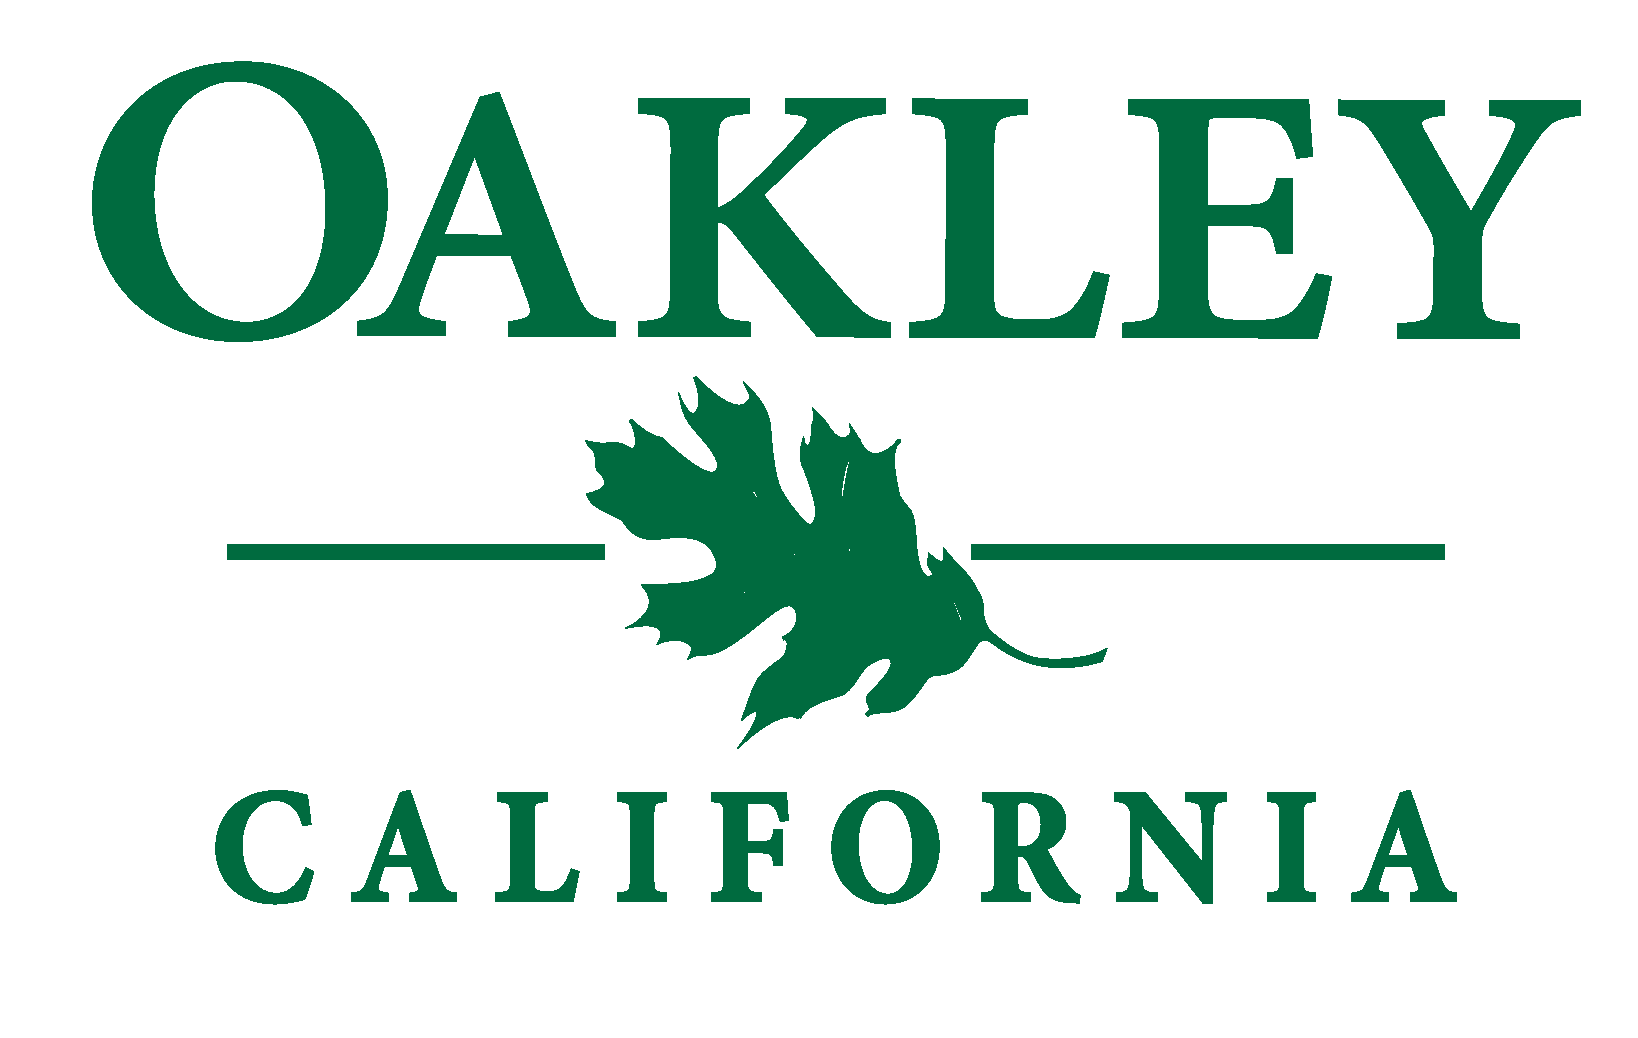 oakley california